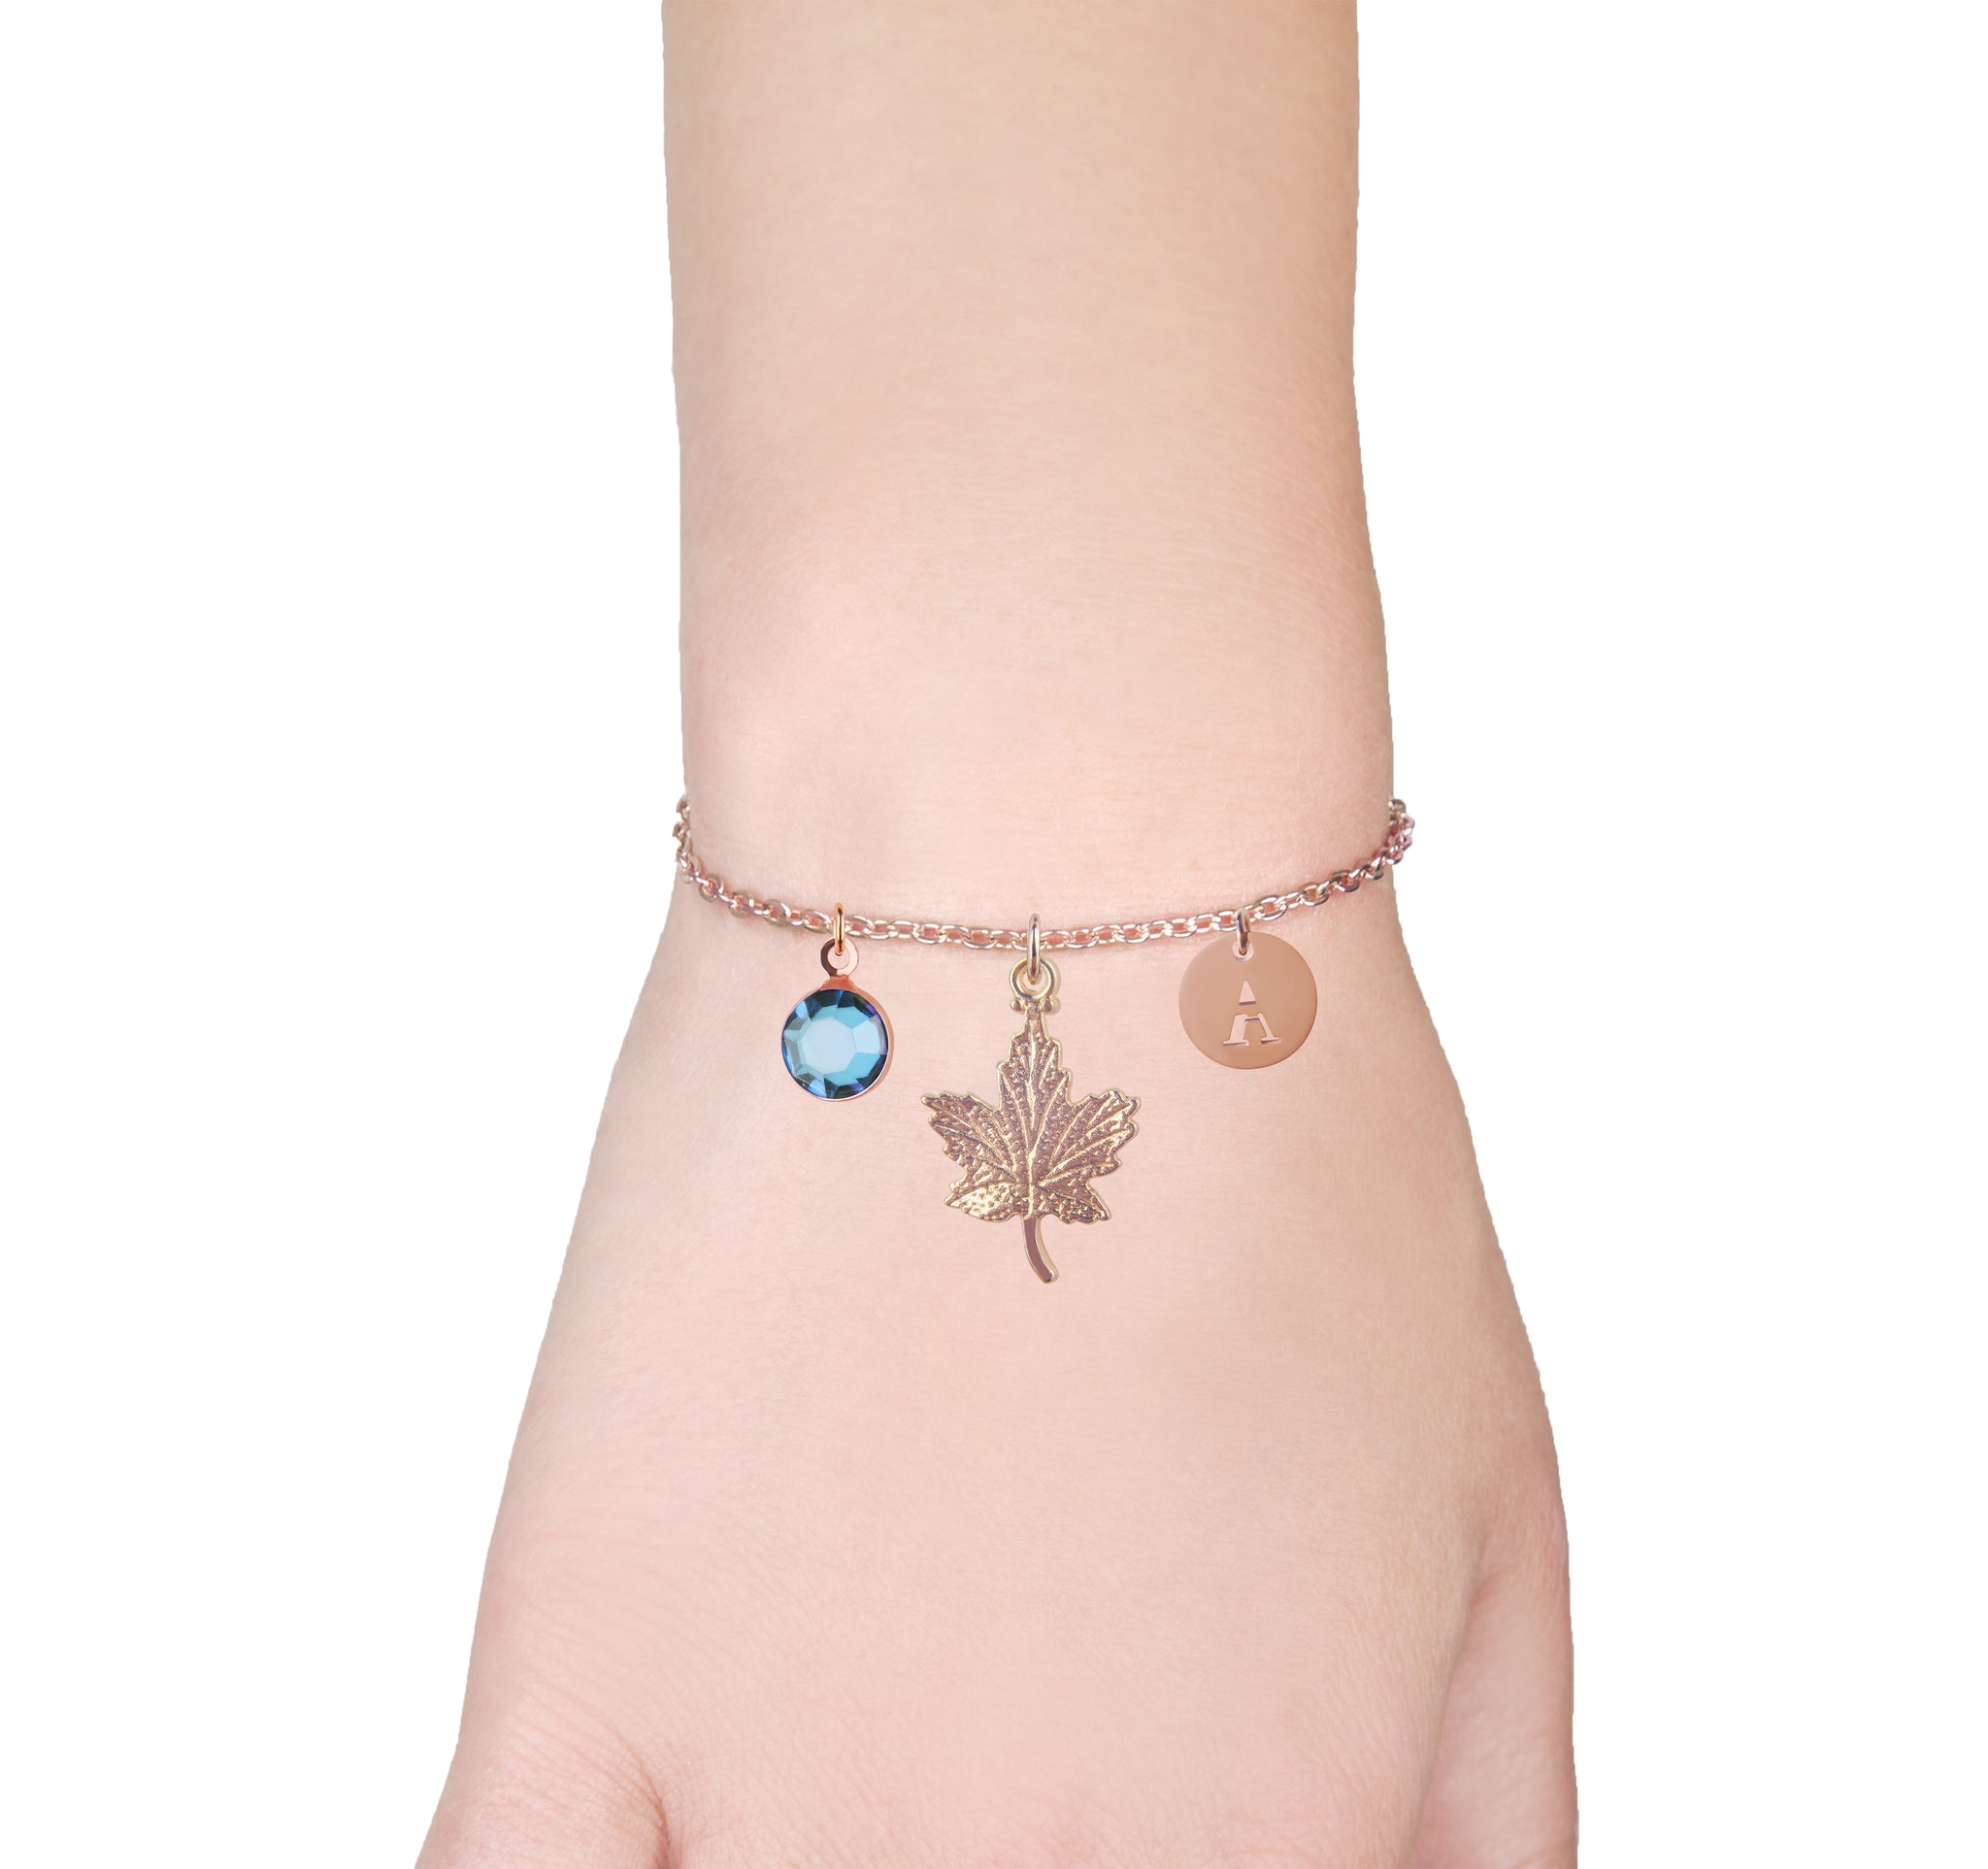 Canadian maple leaf rose gold bracelet with birthstone and initial - Canadian jewellery - Statement Made Jewellery